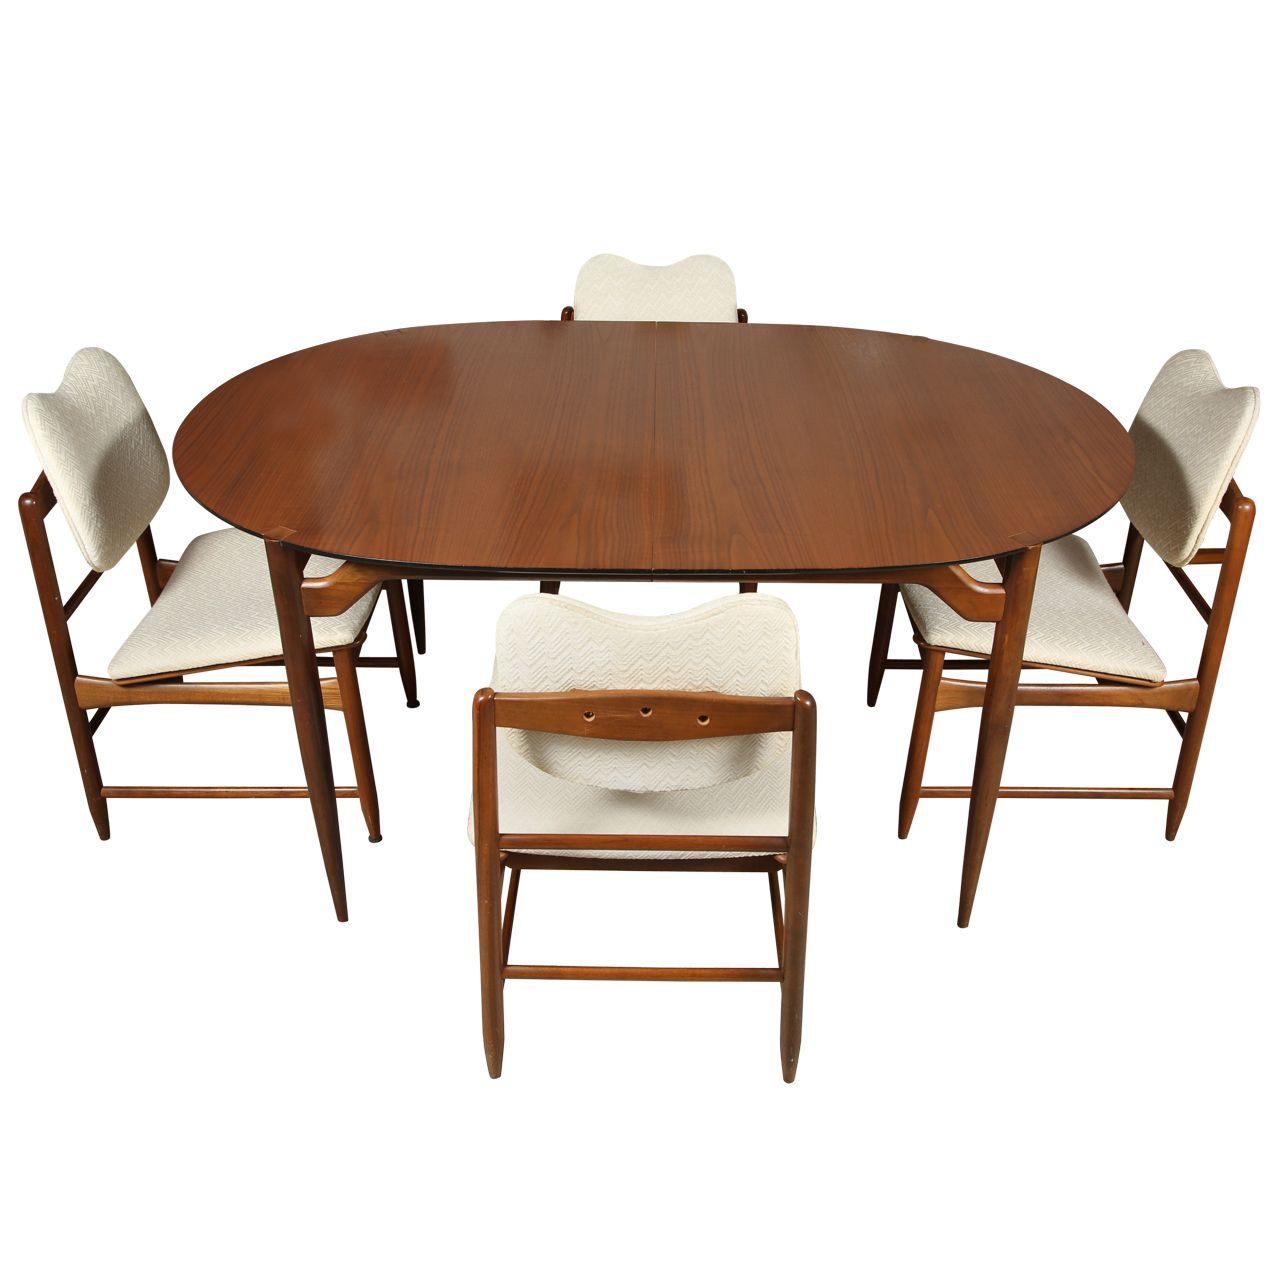 Greta grossman dining table with rosewood top and set of four greta grossman dining table with rosewood top and set of four chairs in walnut and upholstery geotapseo Gallery